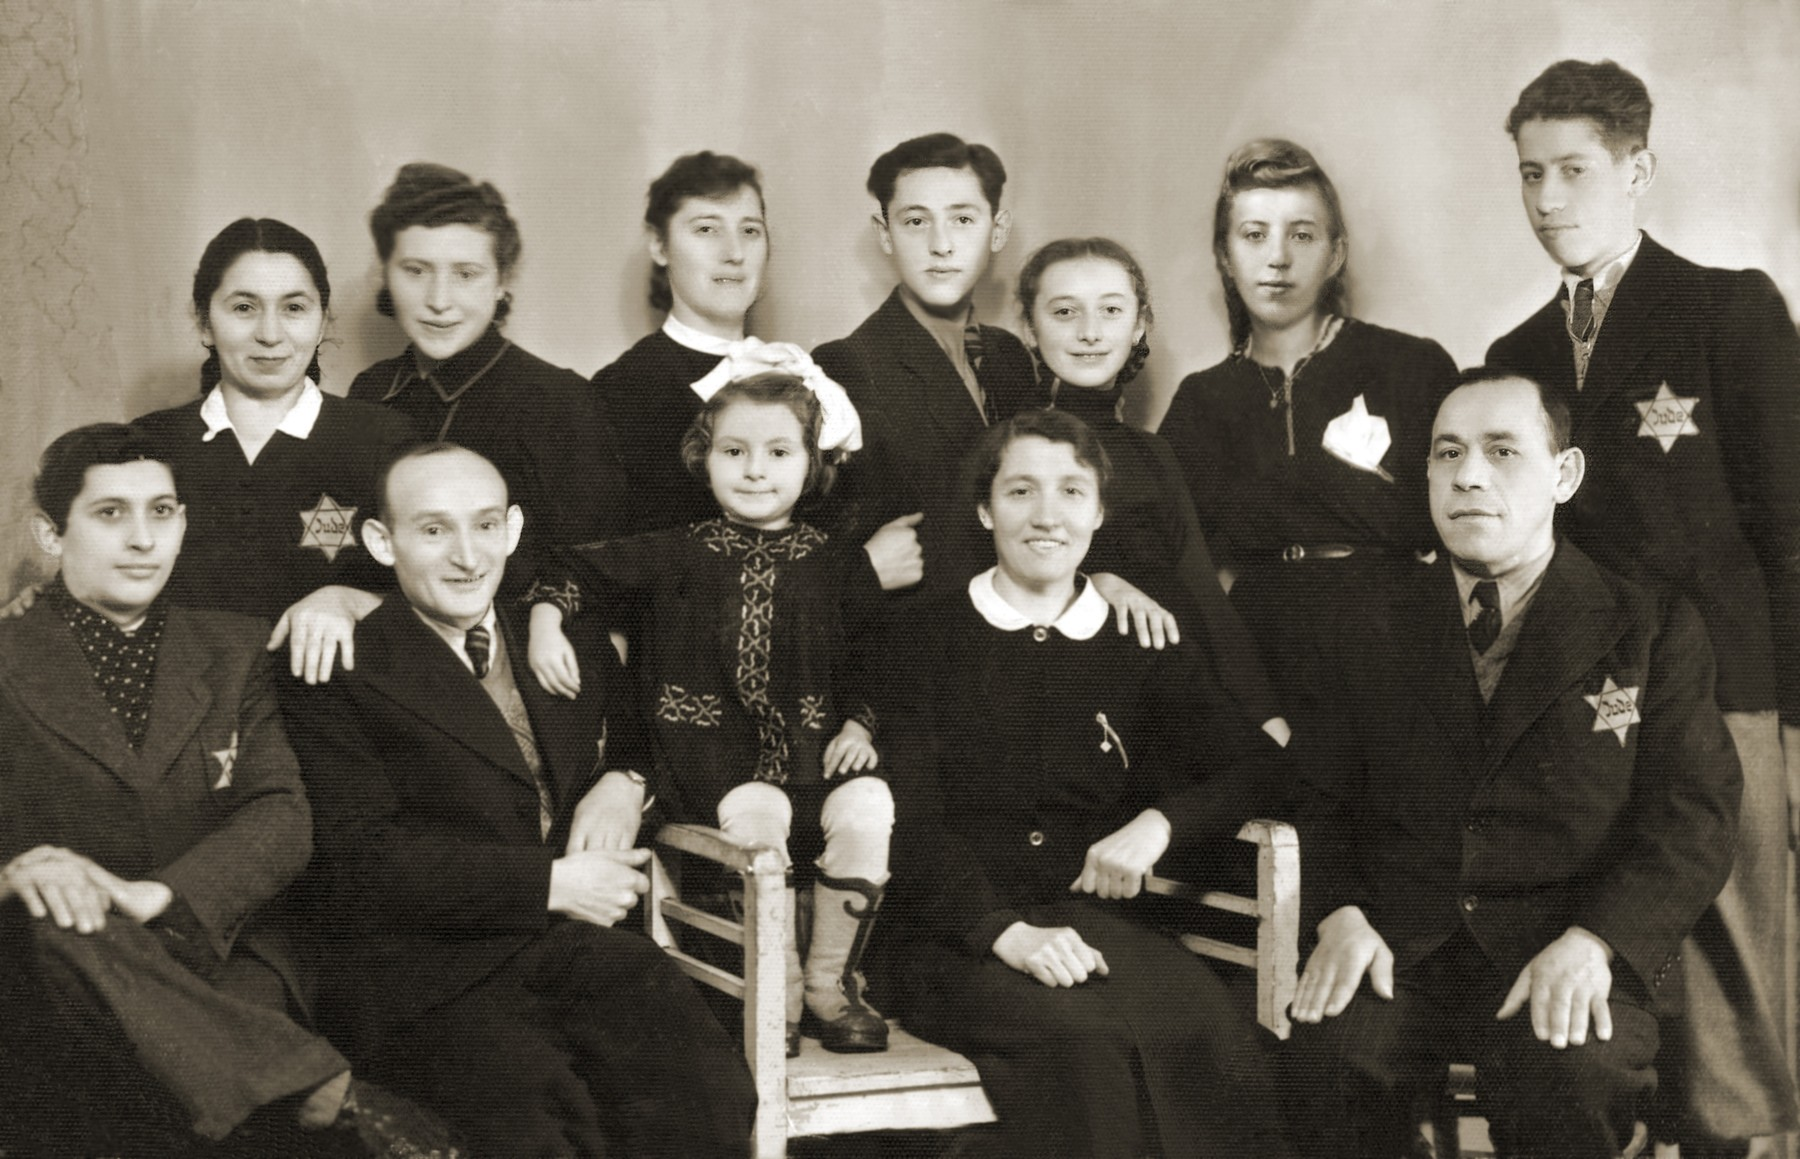 Group portrait of members of the extended Gipsman family in the Bedzin ghetto.  Pictured in the back row, from left to right are: Lea and Chawa Gipsman; Chaja Gitla Gipsman; Natan Gipsman; Maniusia Gipsman; Regina Fajerman; and Maks Zylbersztajn.  Seated in the front row, from left to right are: Herman Zylbersztajn; Wolf Gipsman; Dina Gipsman; Sara Zylbersztajn; and Moryc Zylbersztajn.